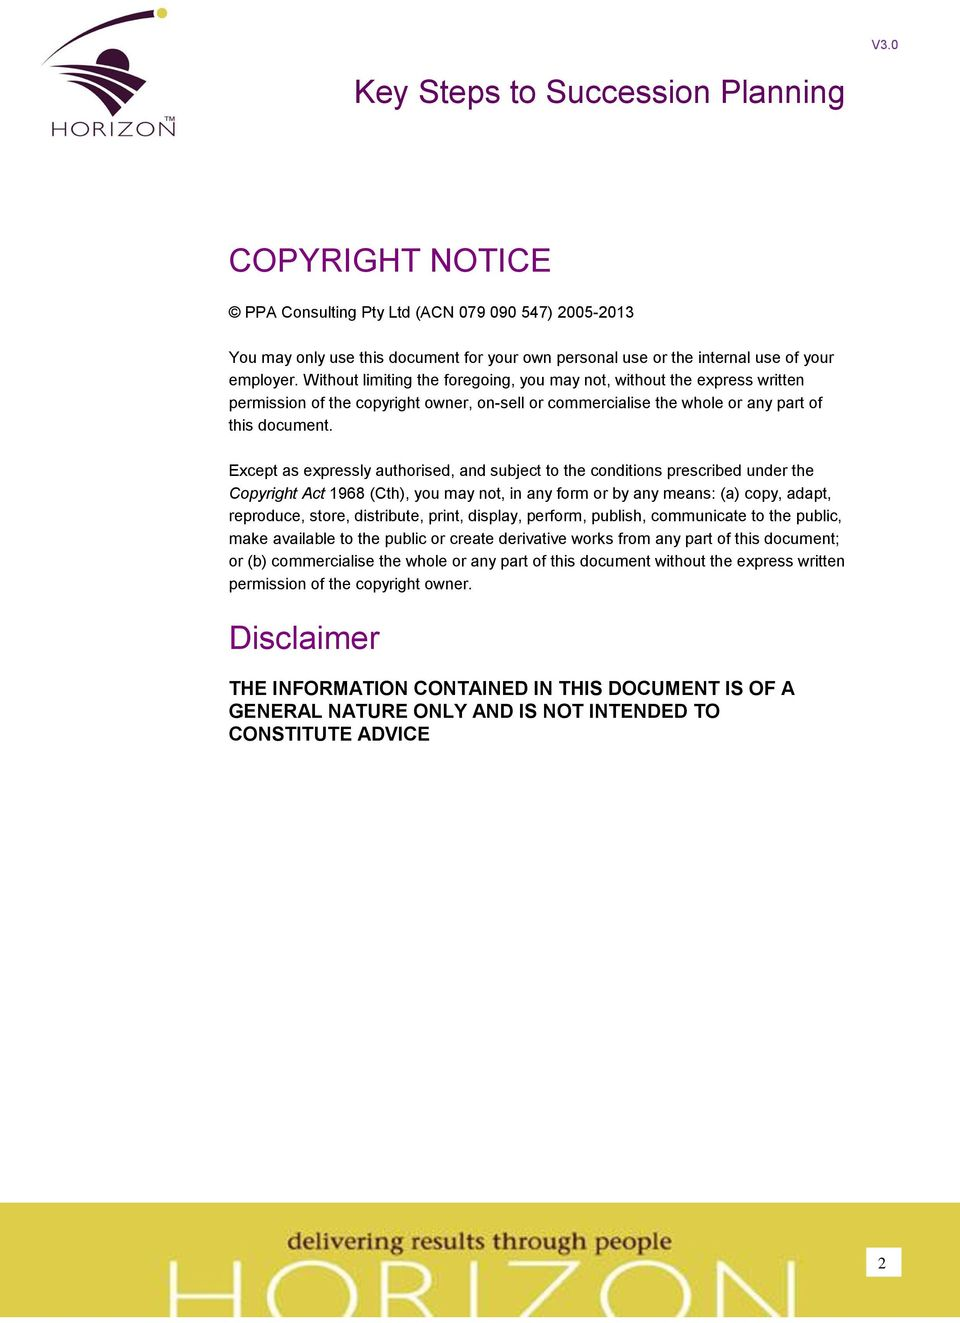 Except as expressly authorised, and subject to the conditions prescribed under the Copyright Act 1968 (Cth), you may not, in any form or by any means: (a) copy, adapt, reproduce, store, distribute,